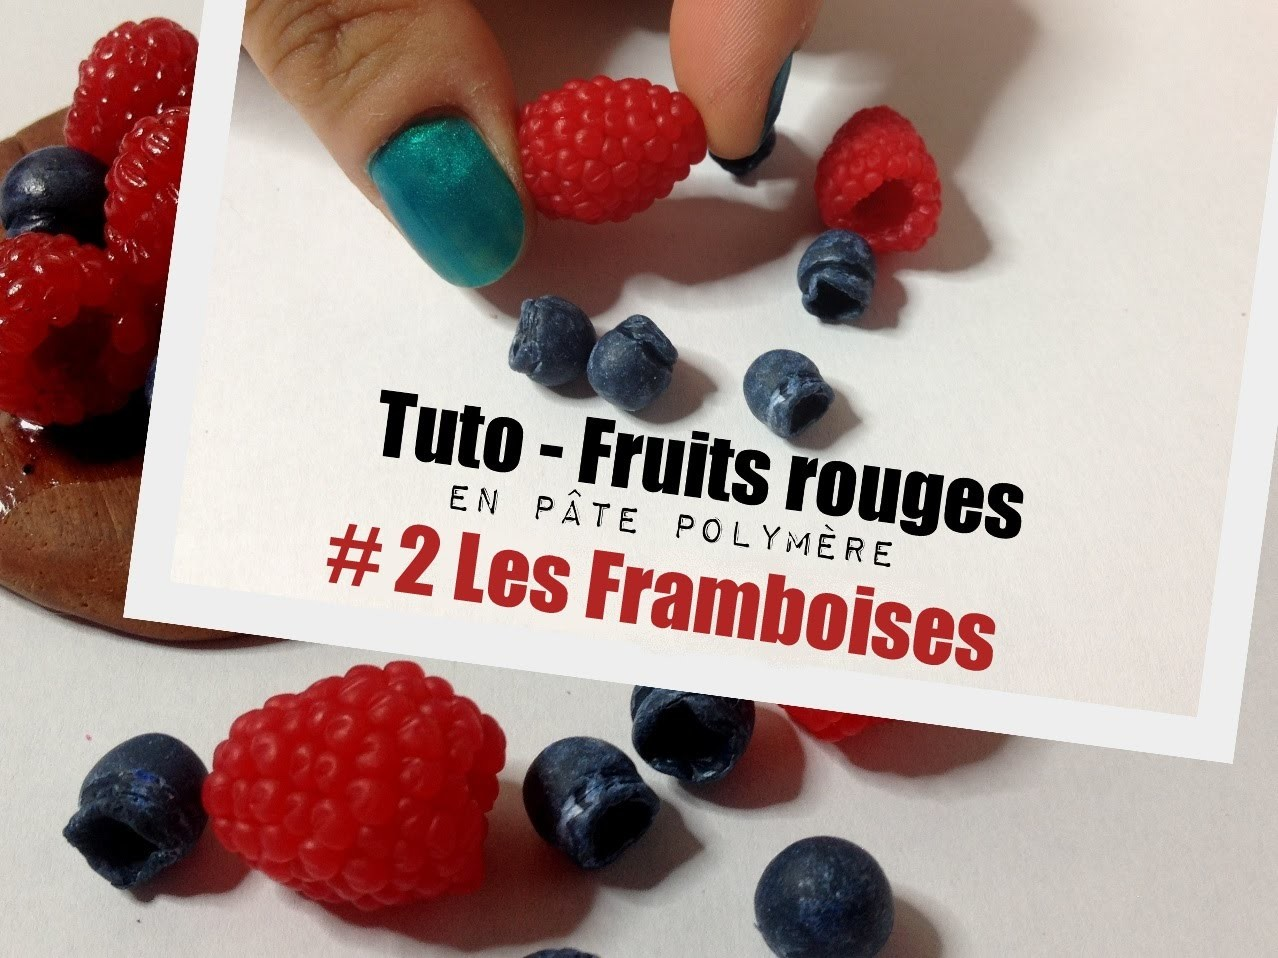 Tuto - Fruits rouges #2 Les framboises (polymer clay)